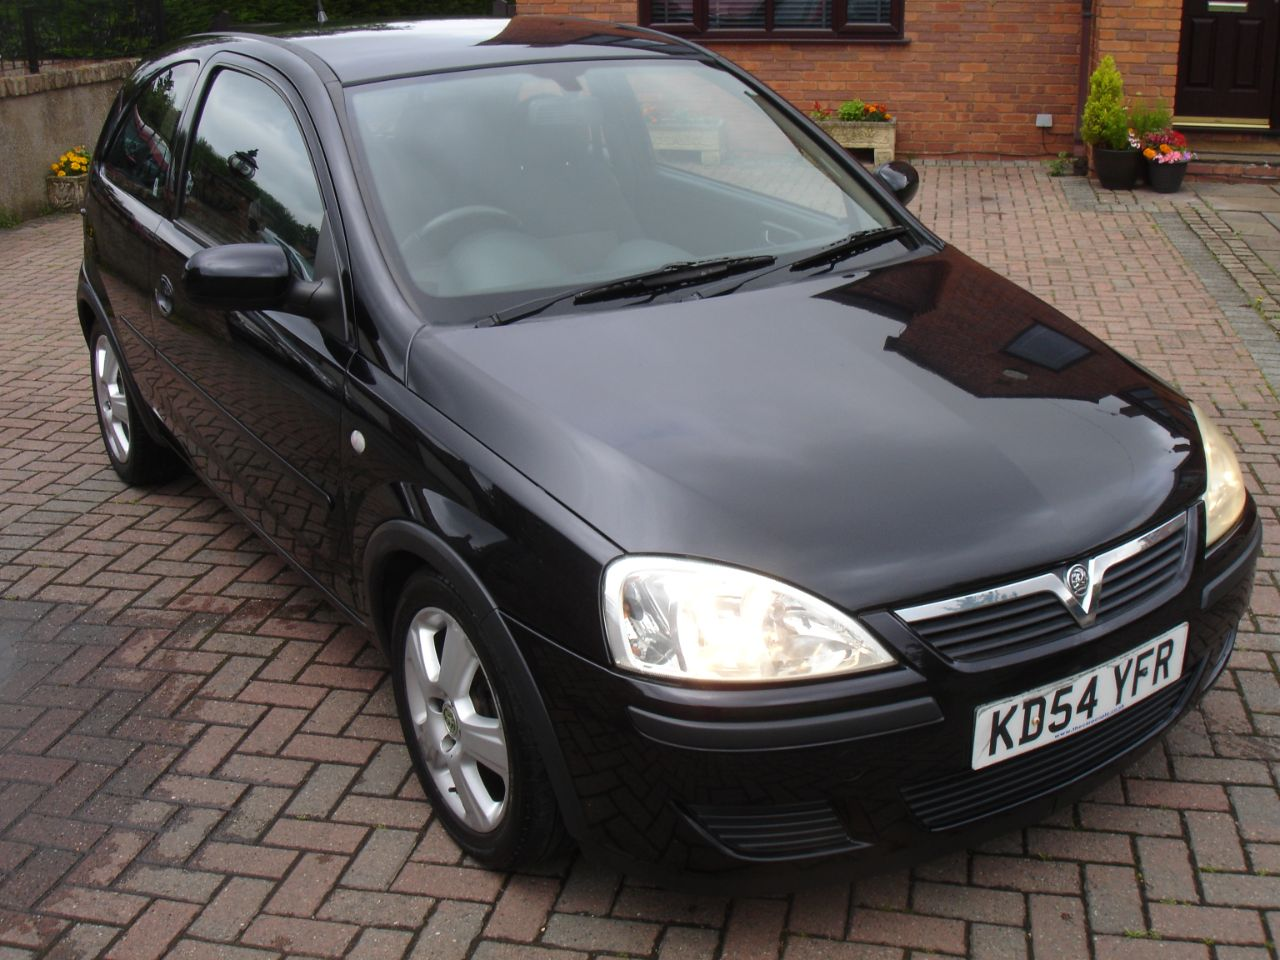 Vauxhall Corsa 1.2i 16V Energy [80] 3dr Hatchback Petrol Black at Level Pitch Selby